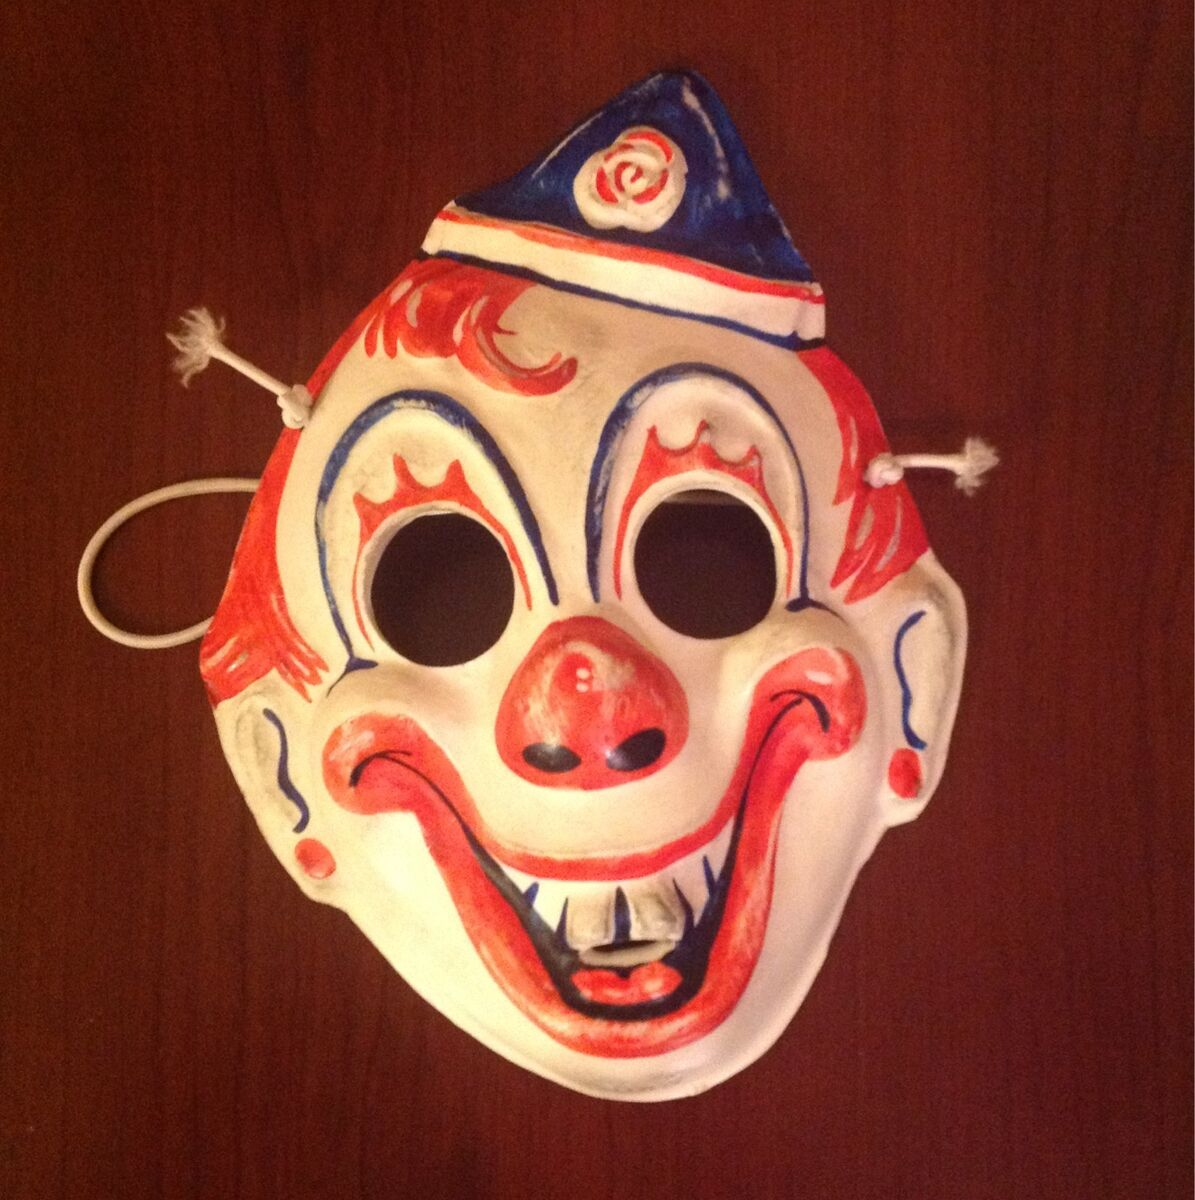 Halloween Clown Mask Michael Myers.Michael Myers Clown Mask From Halloween On Popscreen